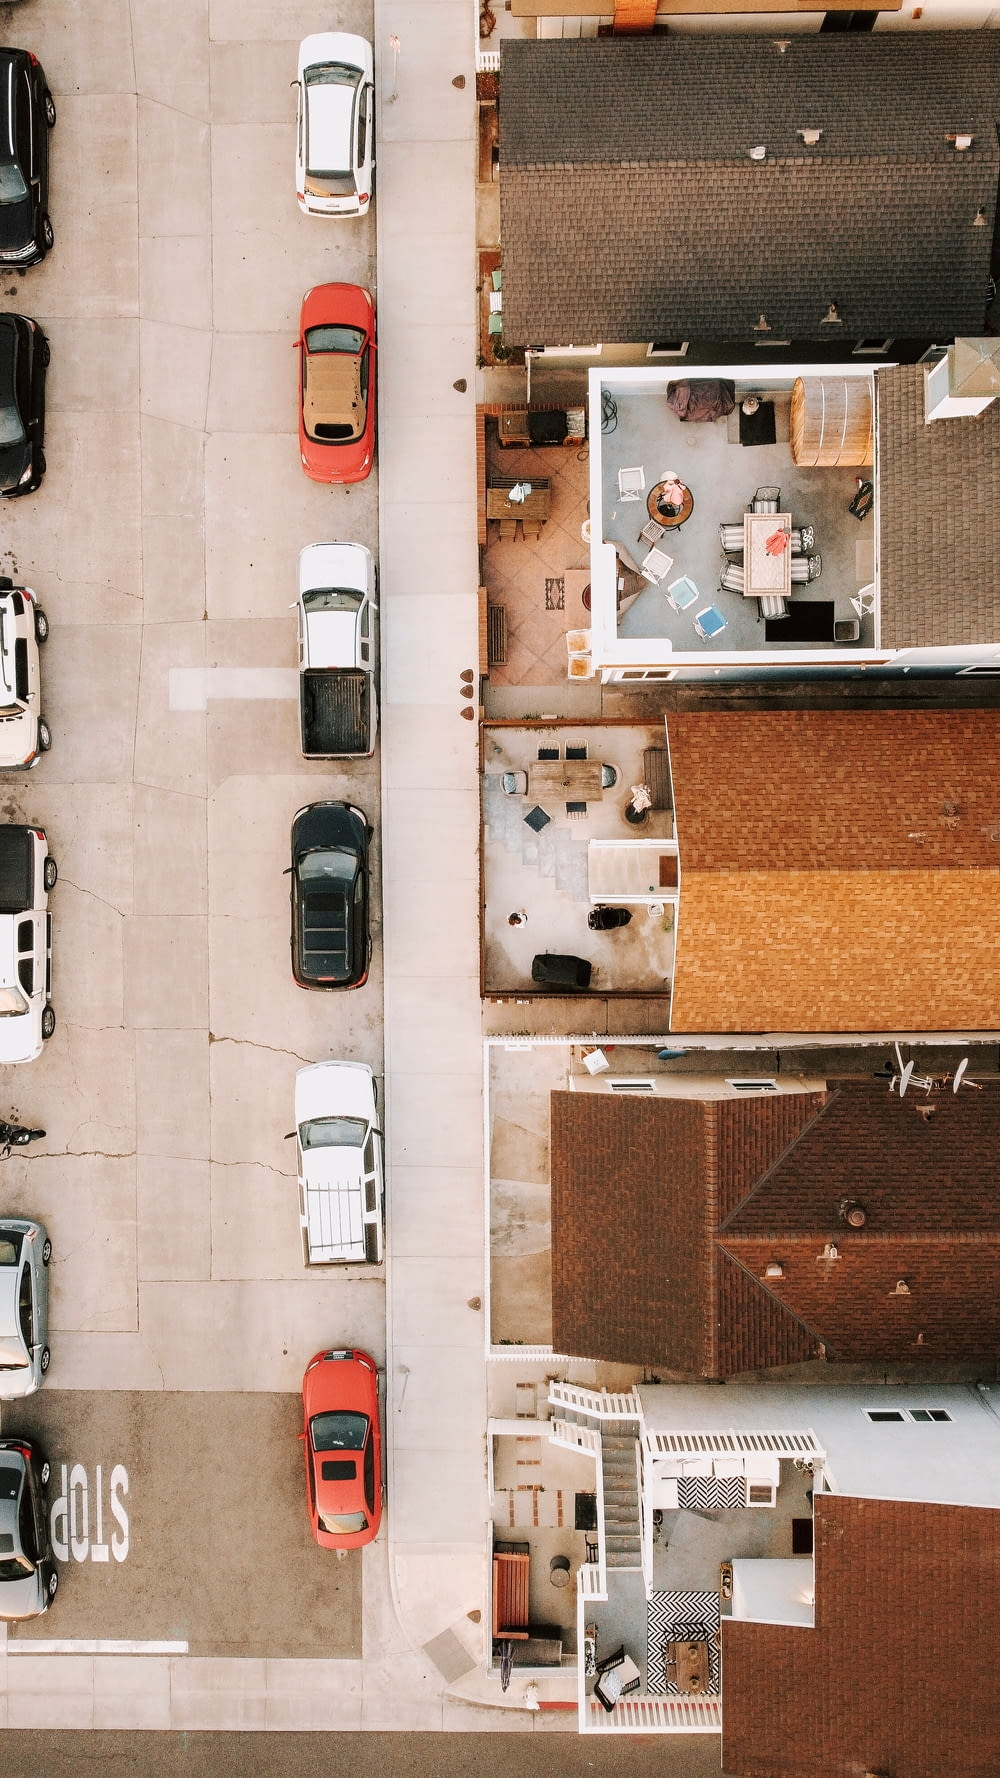 cars parked on parking lot during daytime